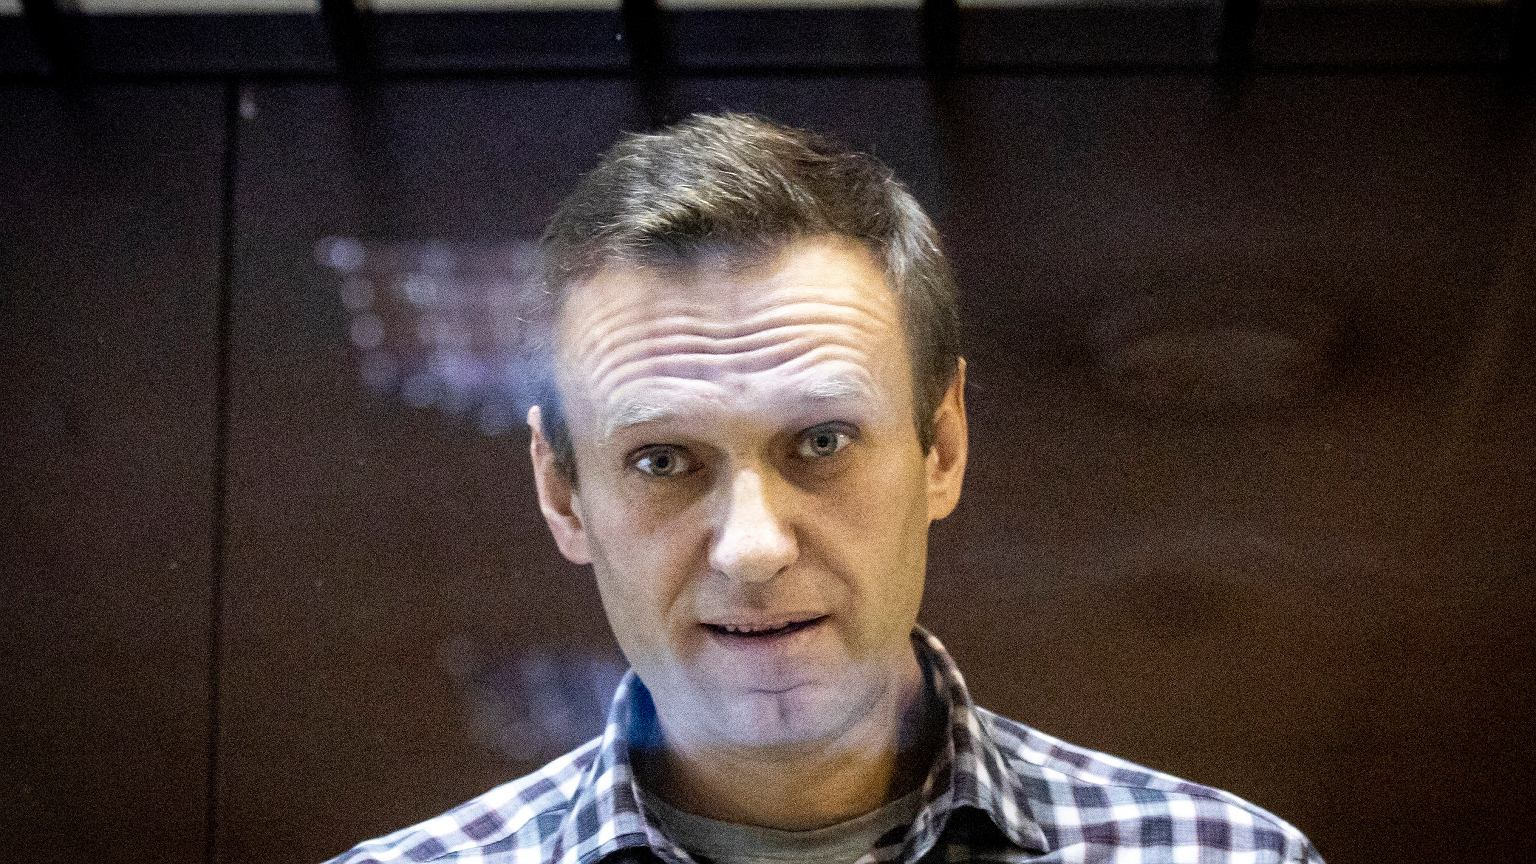 Pro-camp media published a recording supposed to present Navalny